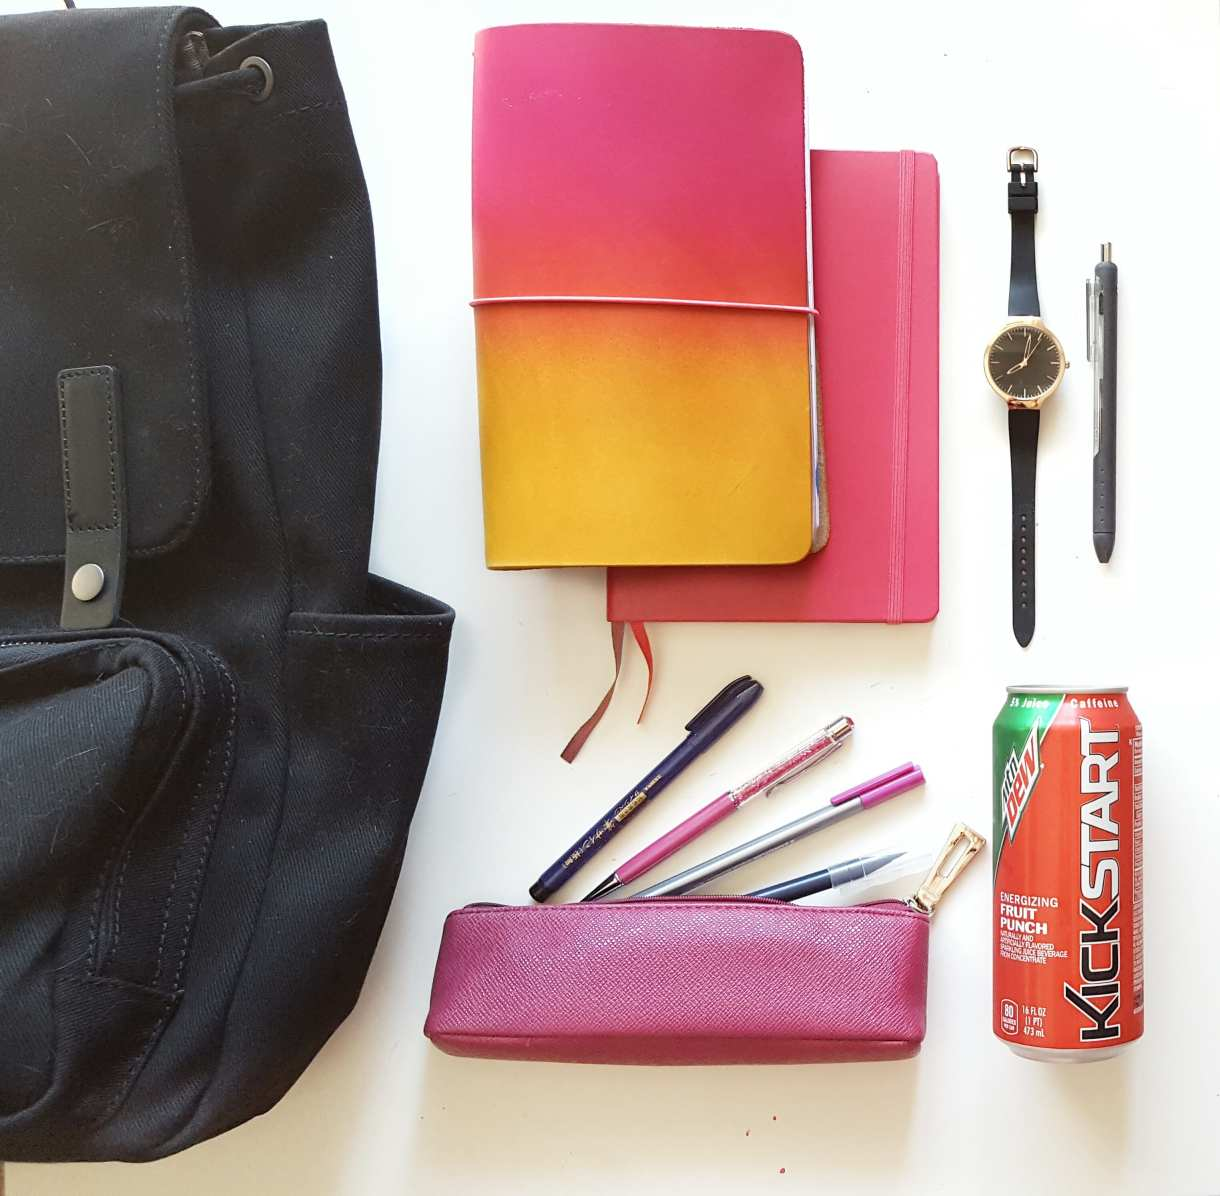 My bullet journal essentials for work